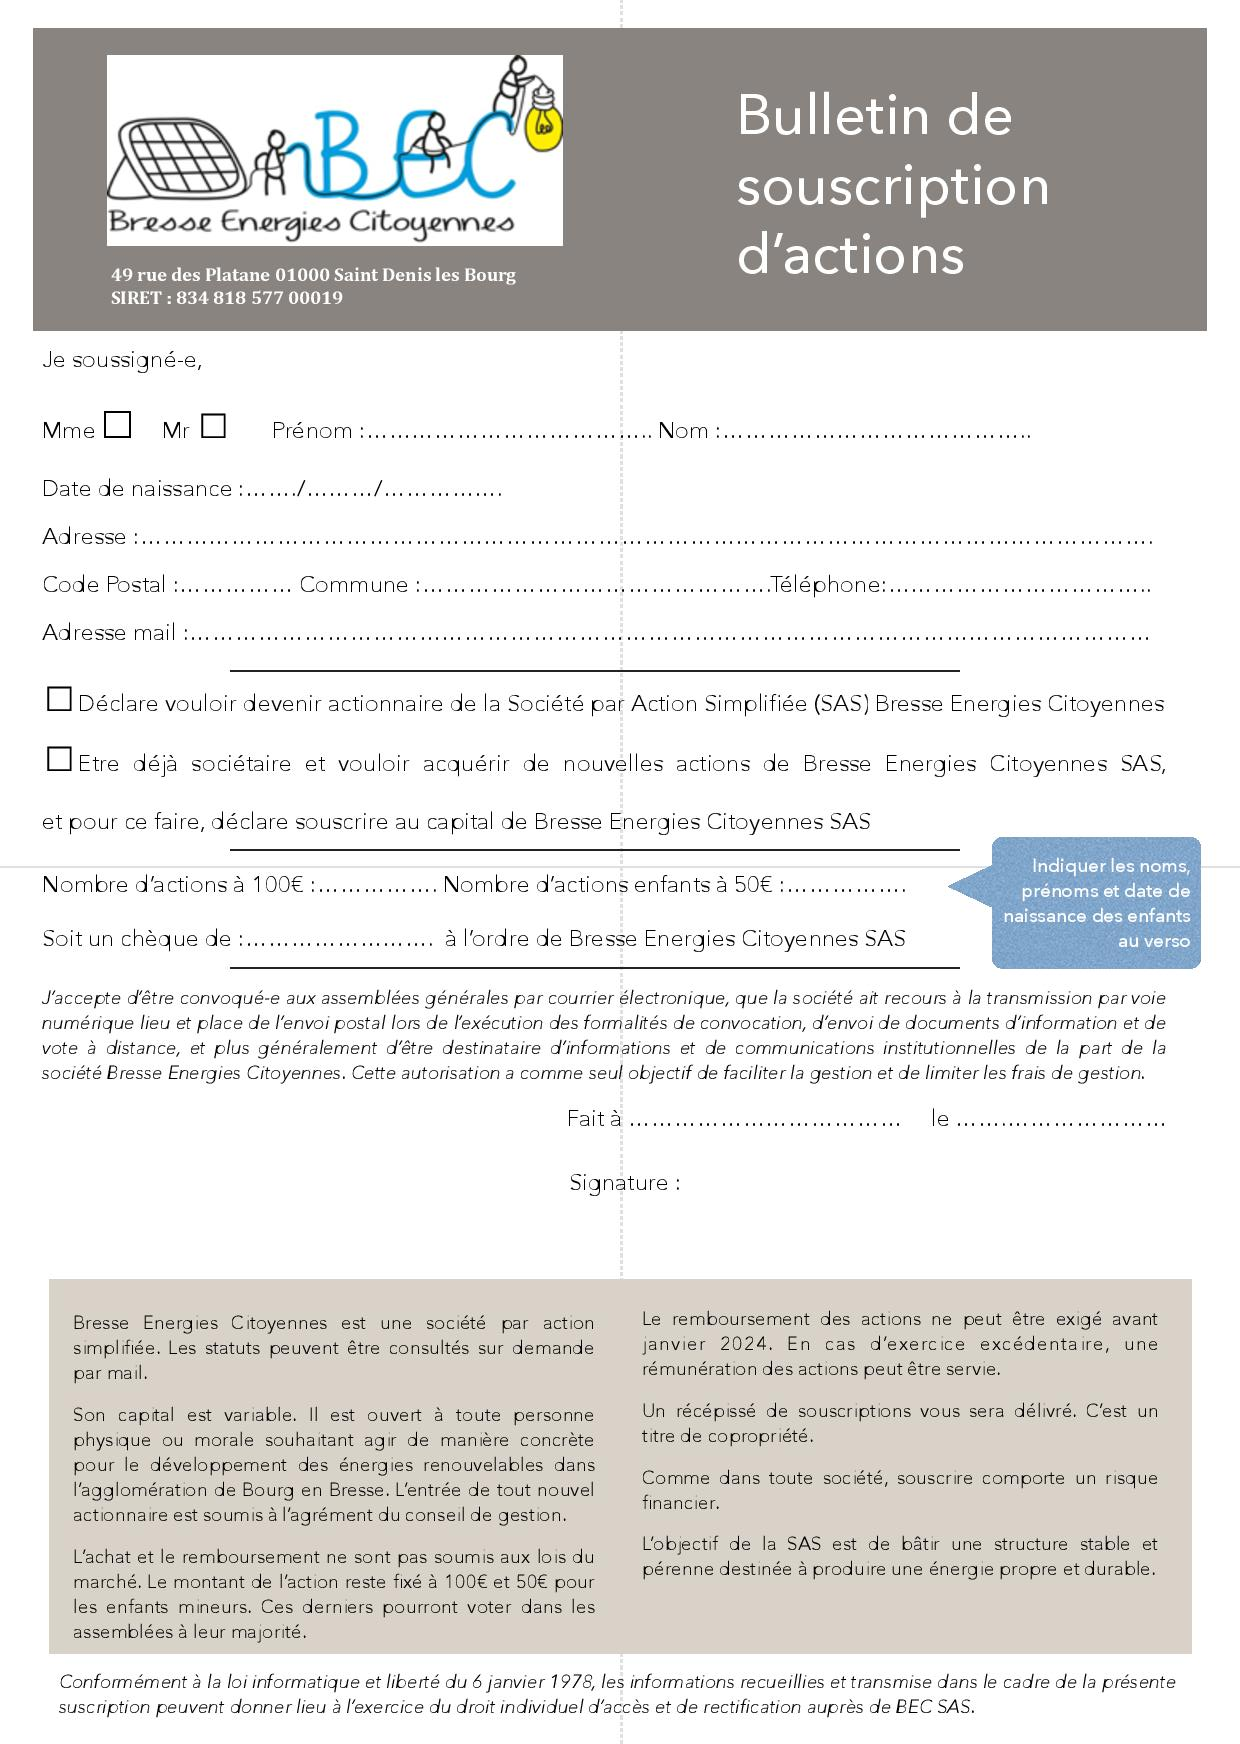 Bulletin souscription verso